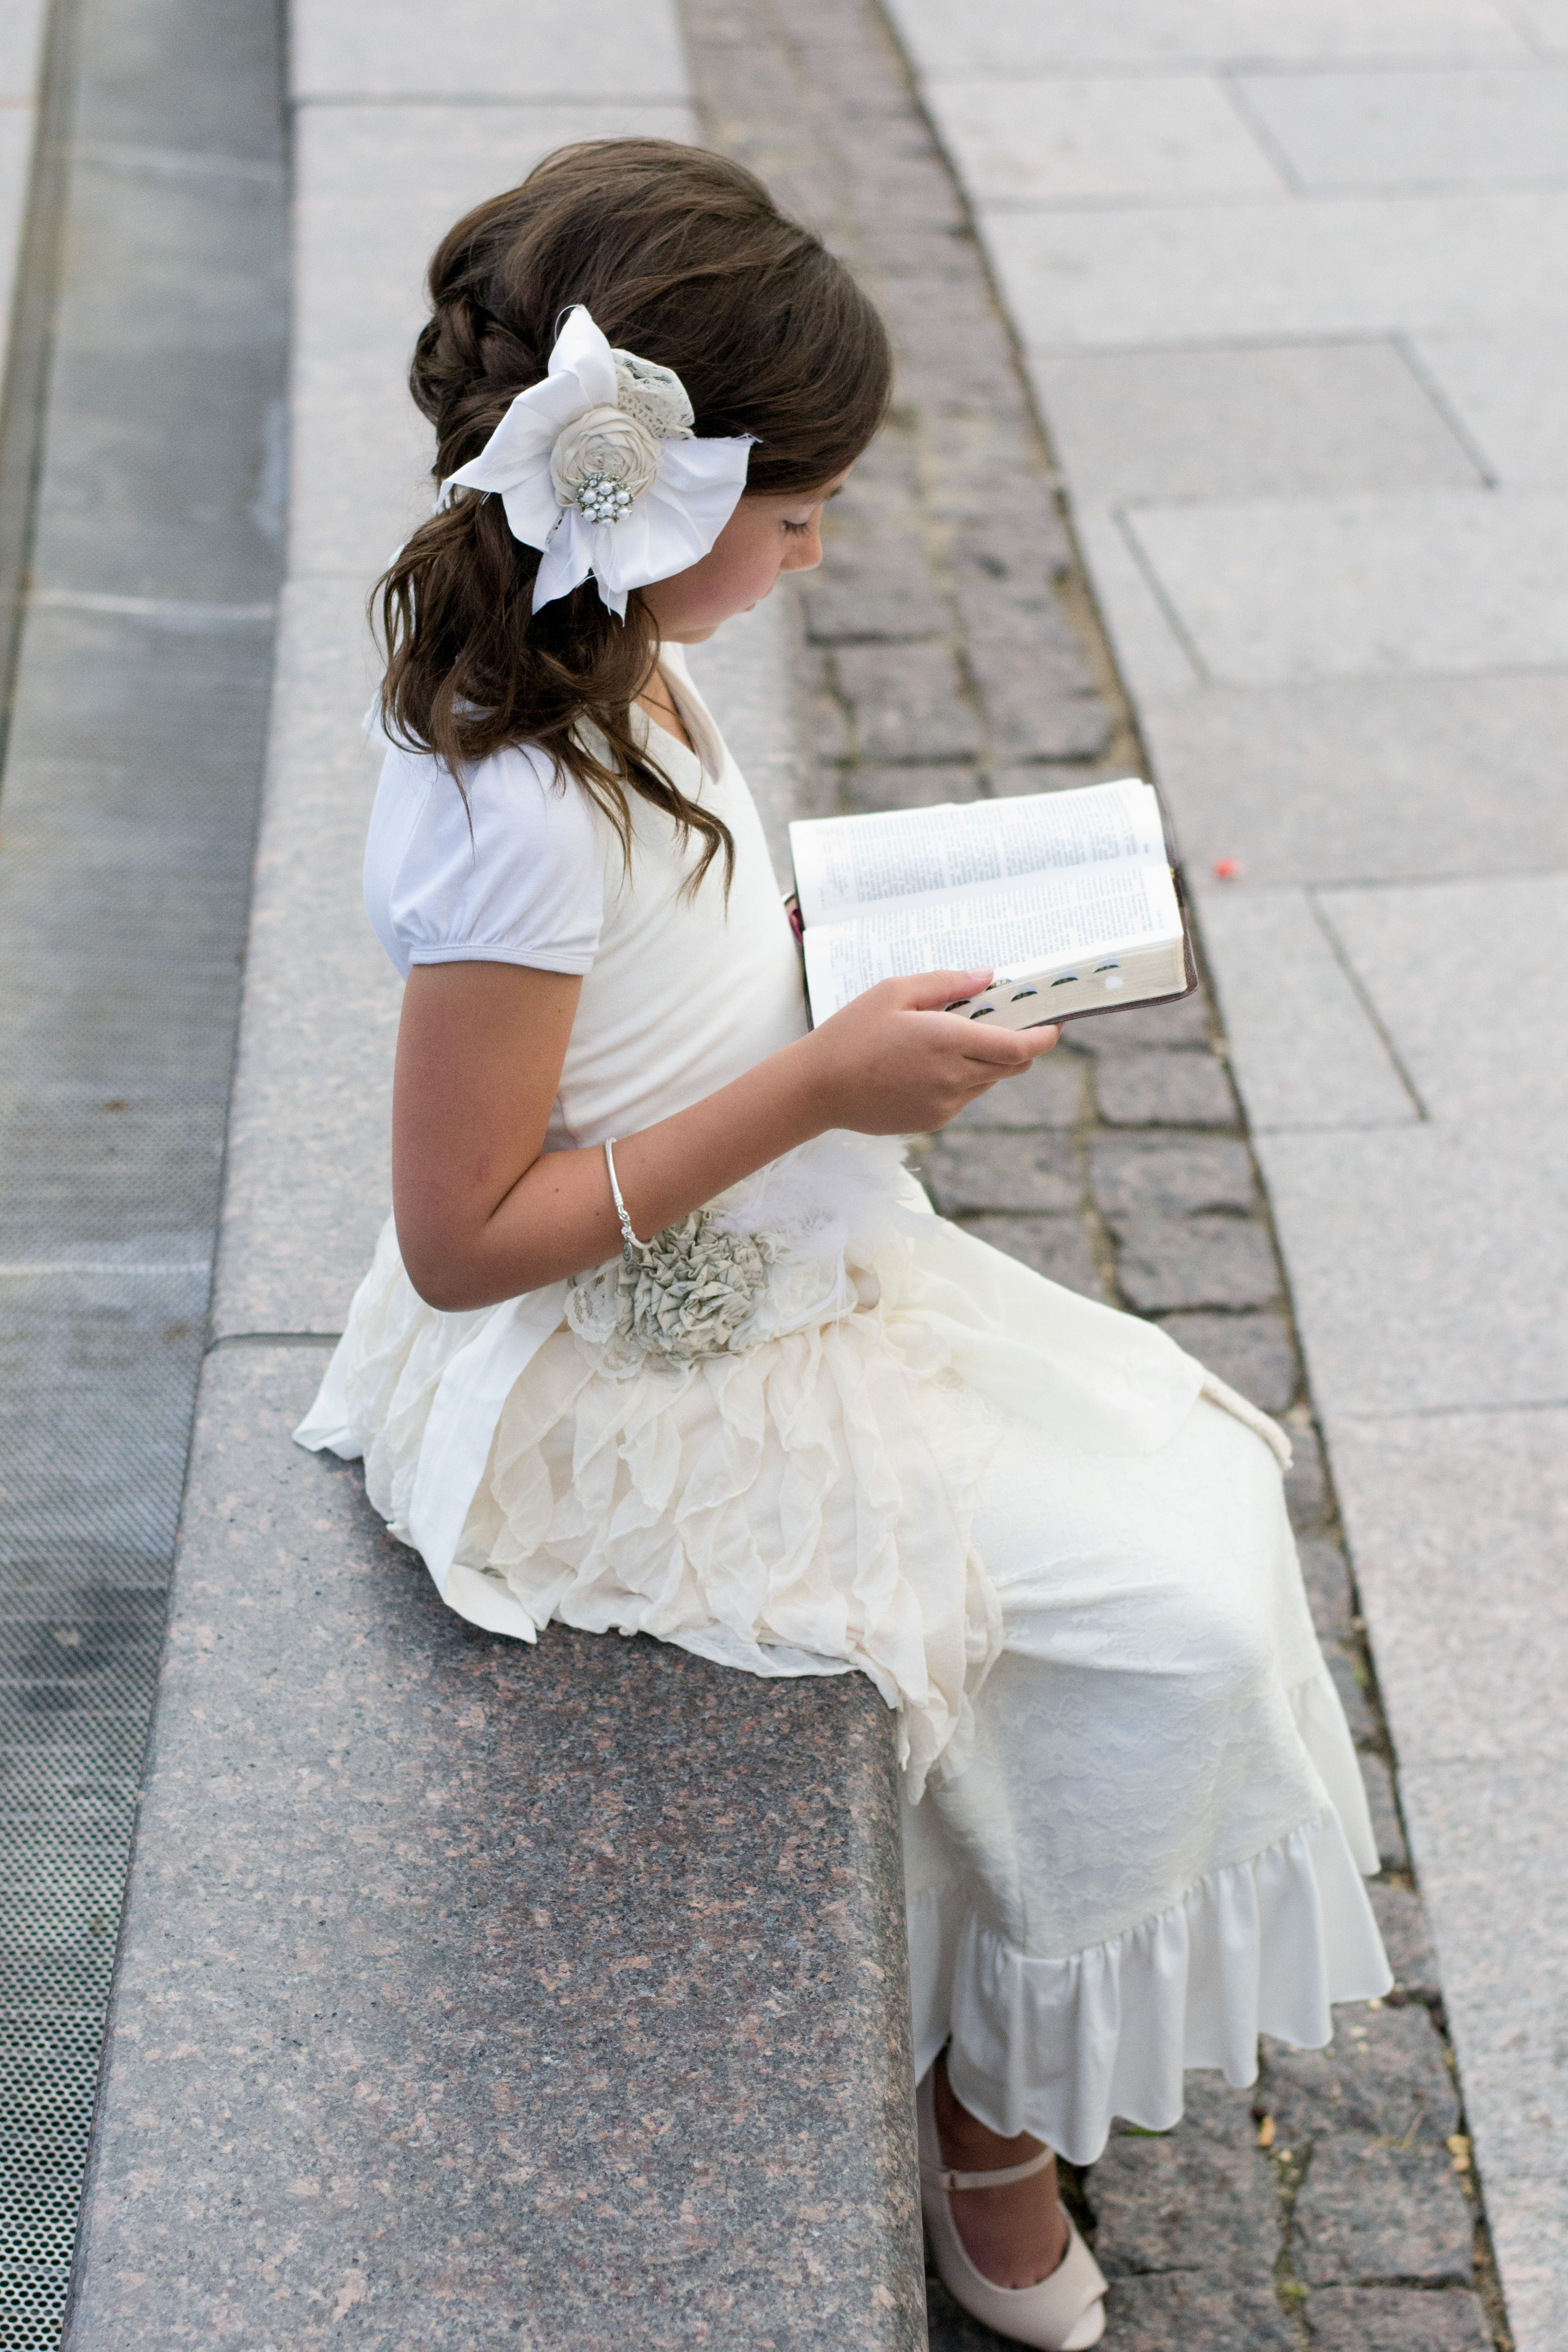 Love the hair accessory Baptism pictures | Baptism/Communion ...